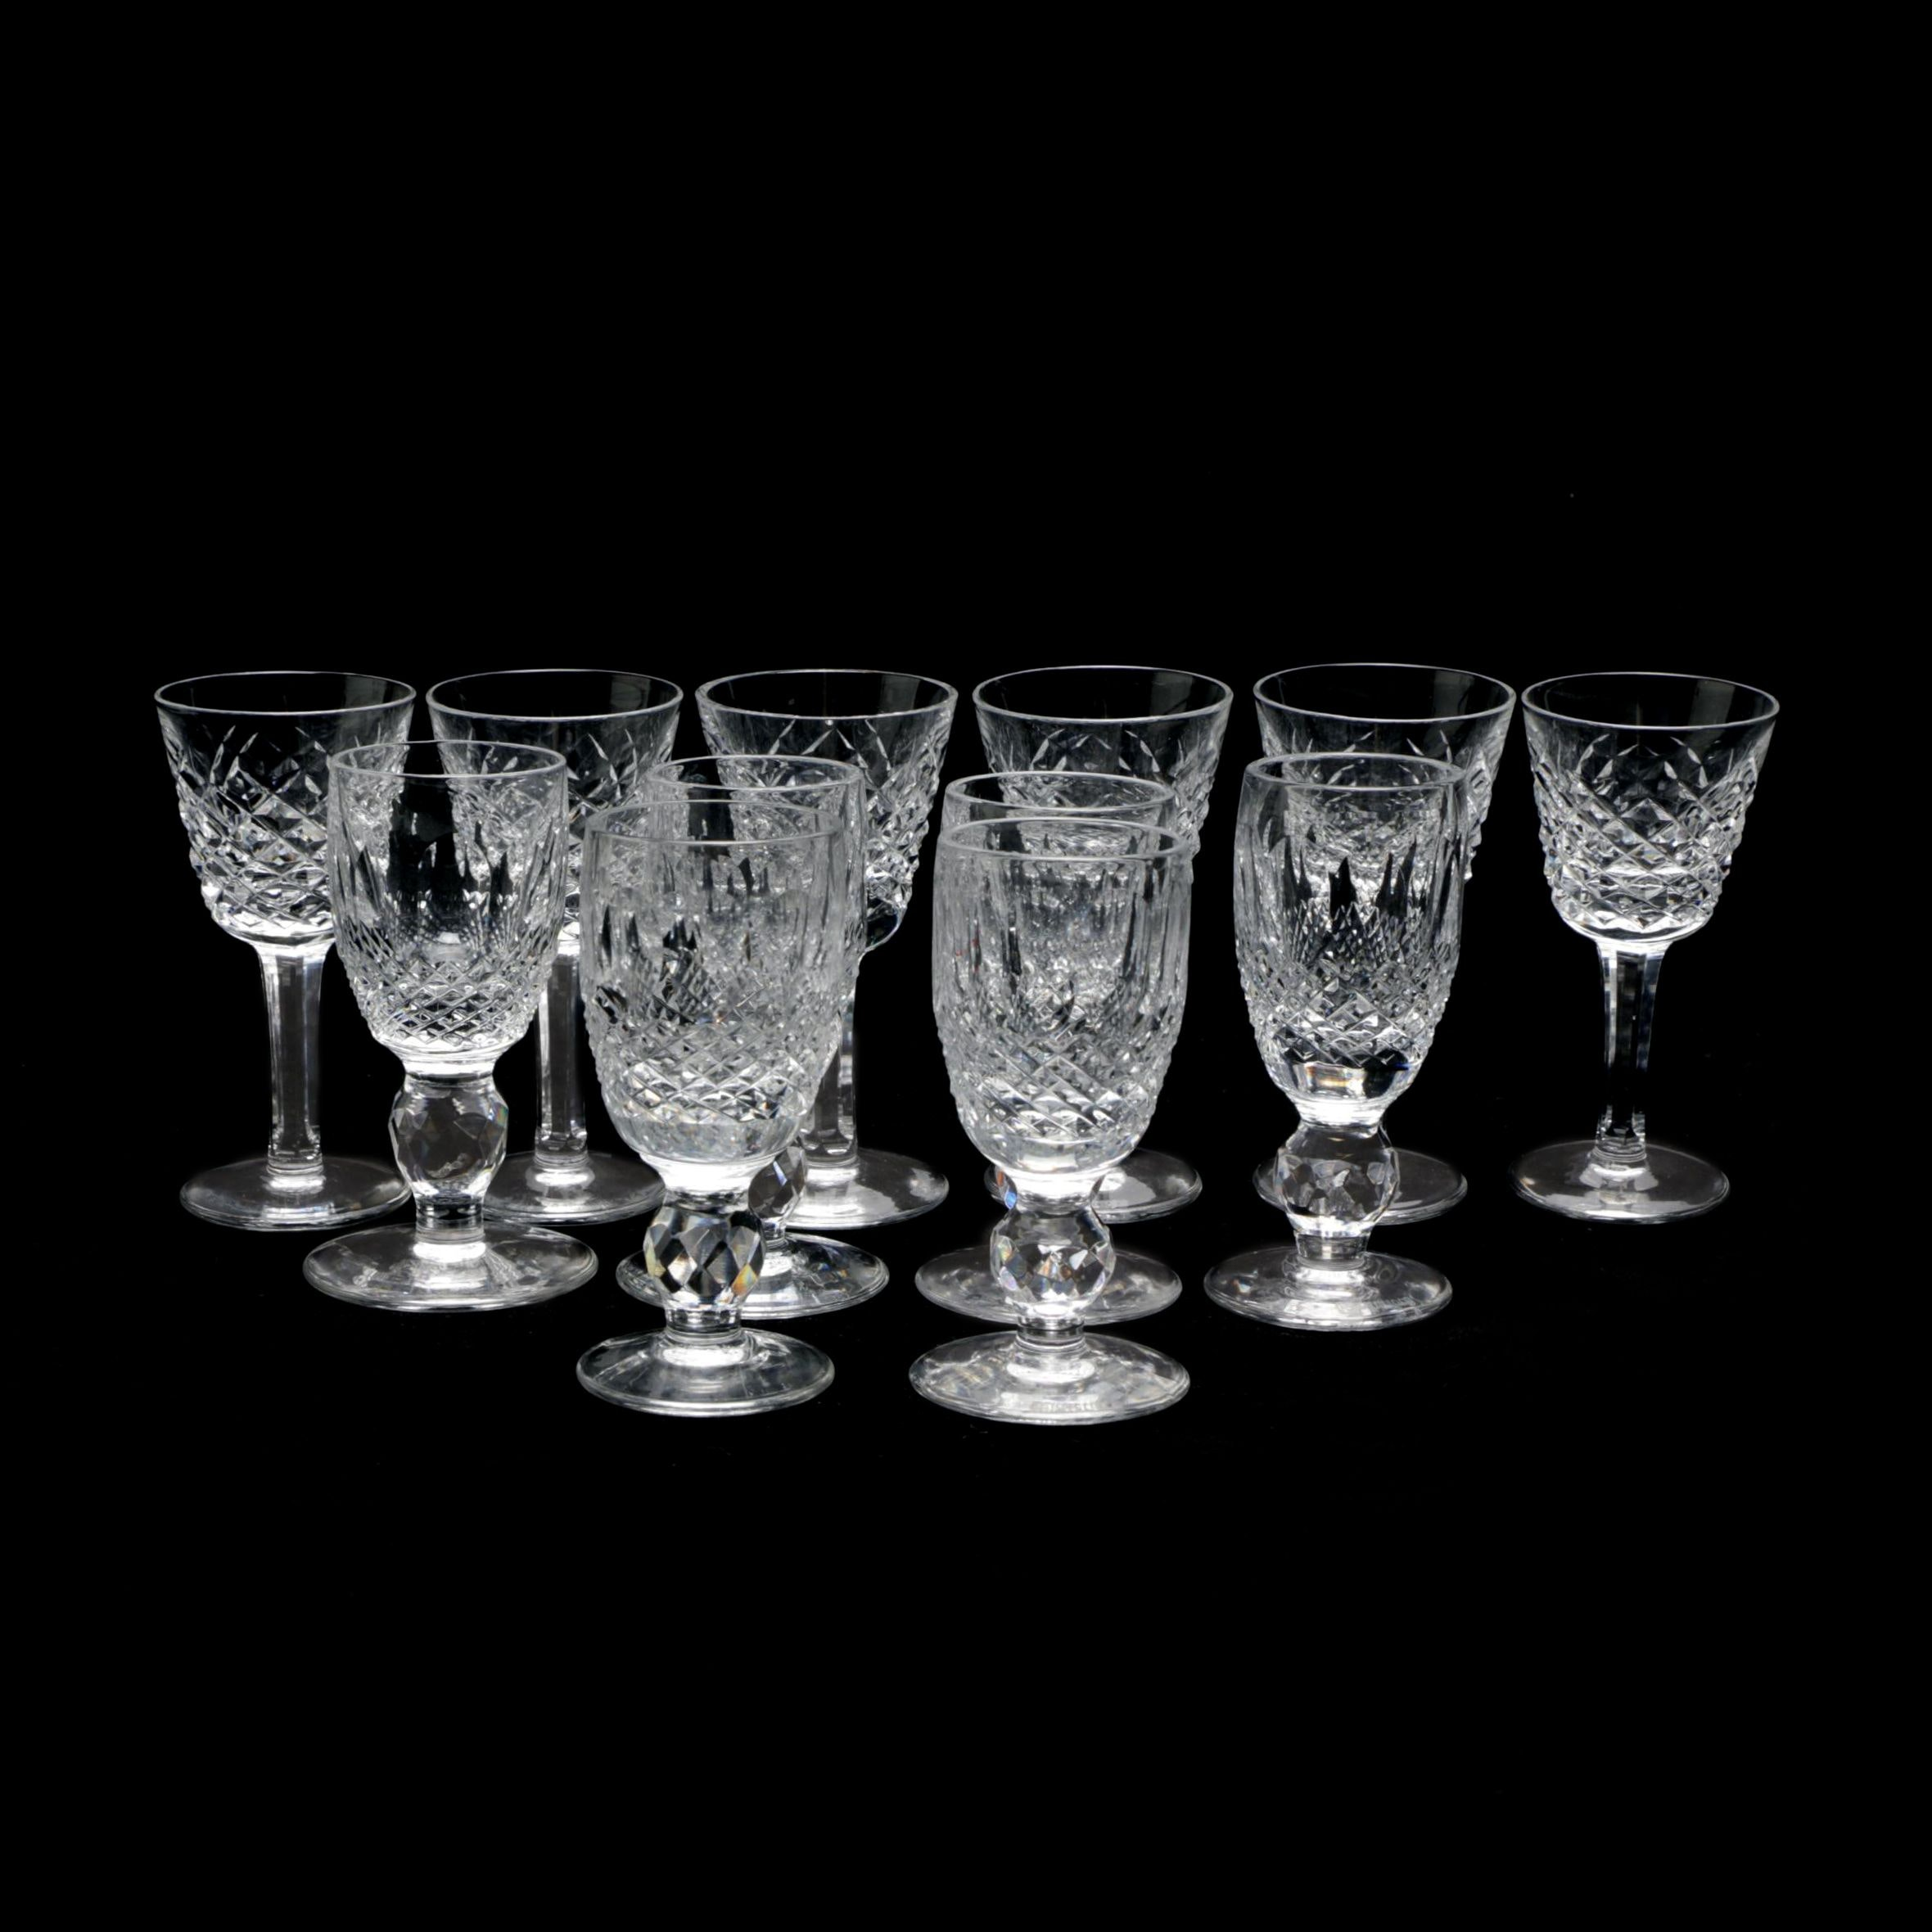 Waterford Crystal Short Stem Colleen Cordial Glasses Ebth